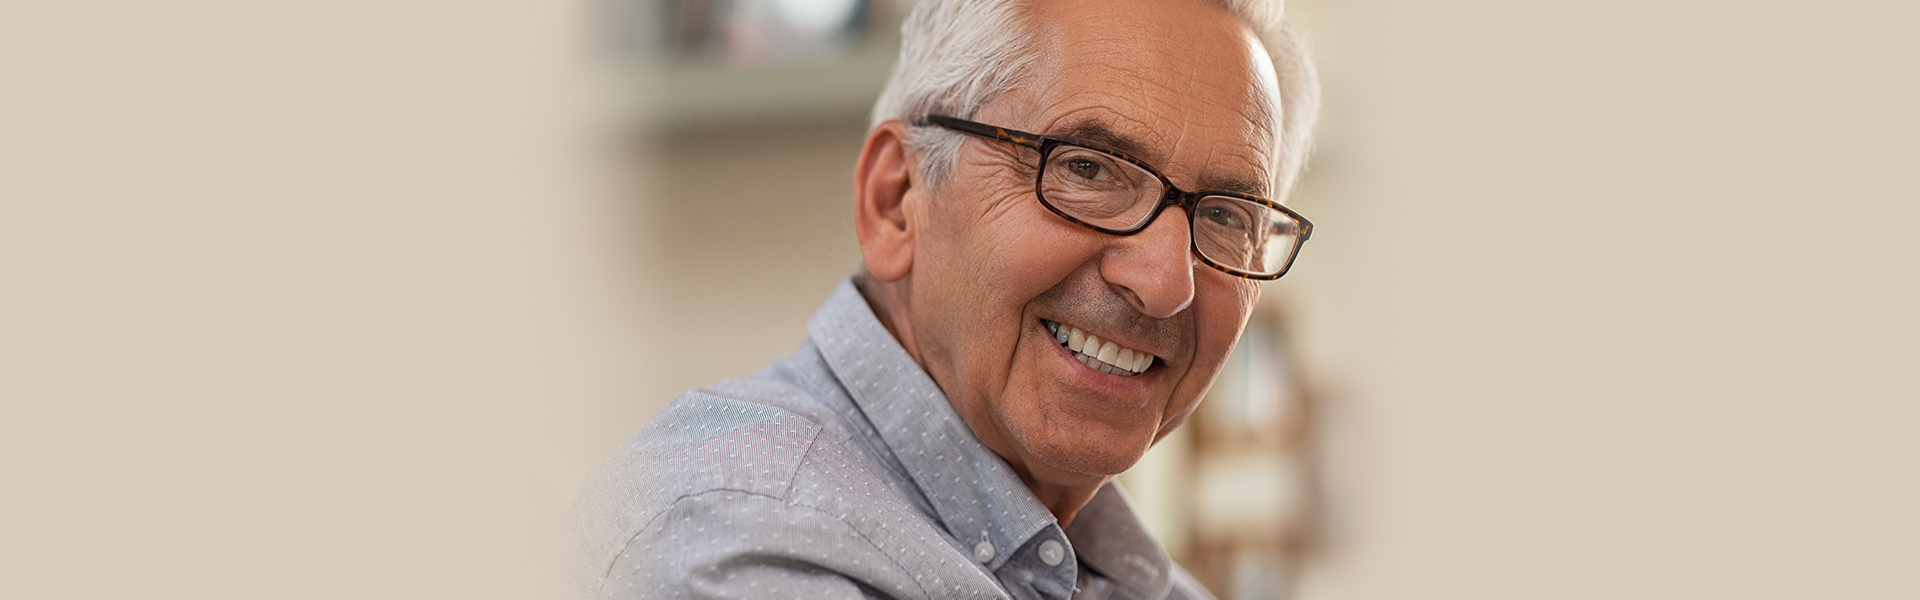 Dentures and Partials in Colombia, SC